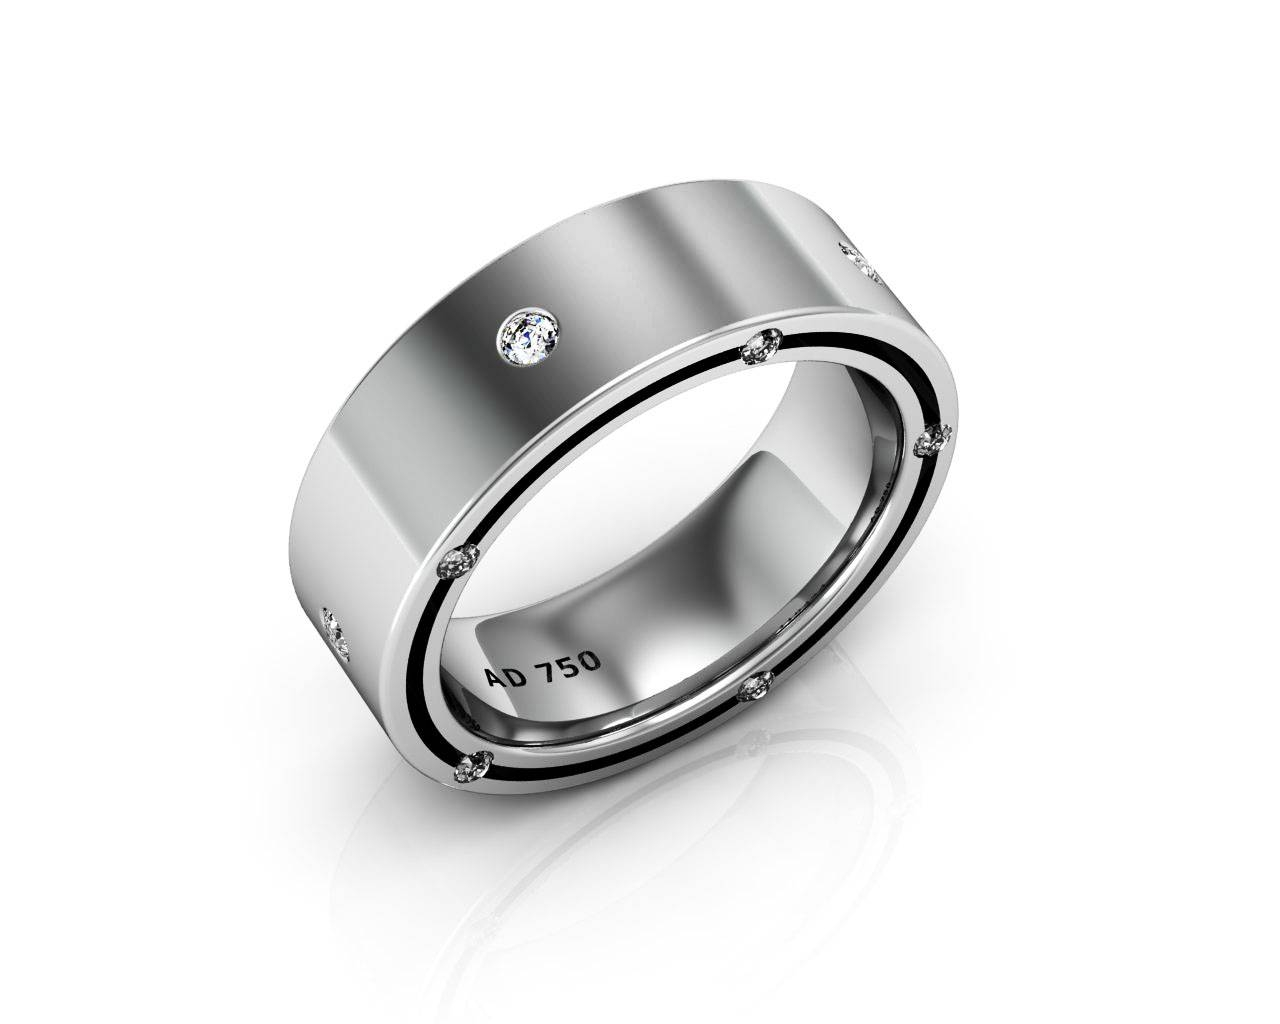 Stone Diamond White Gold Men's Wedding Bands Pertaining To White Gold Men Wedding Rings (View 8 of 15)